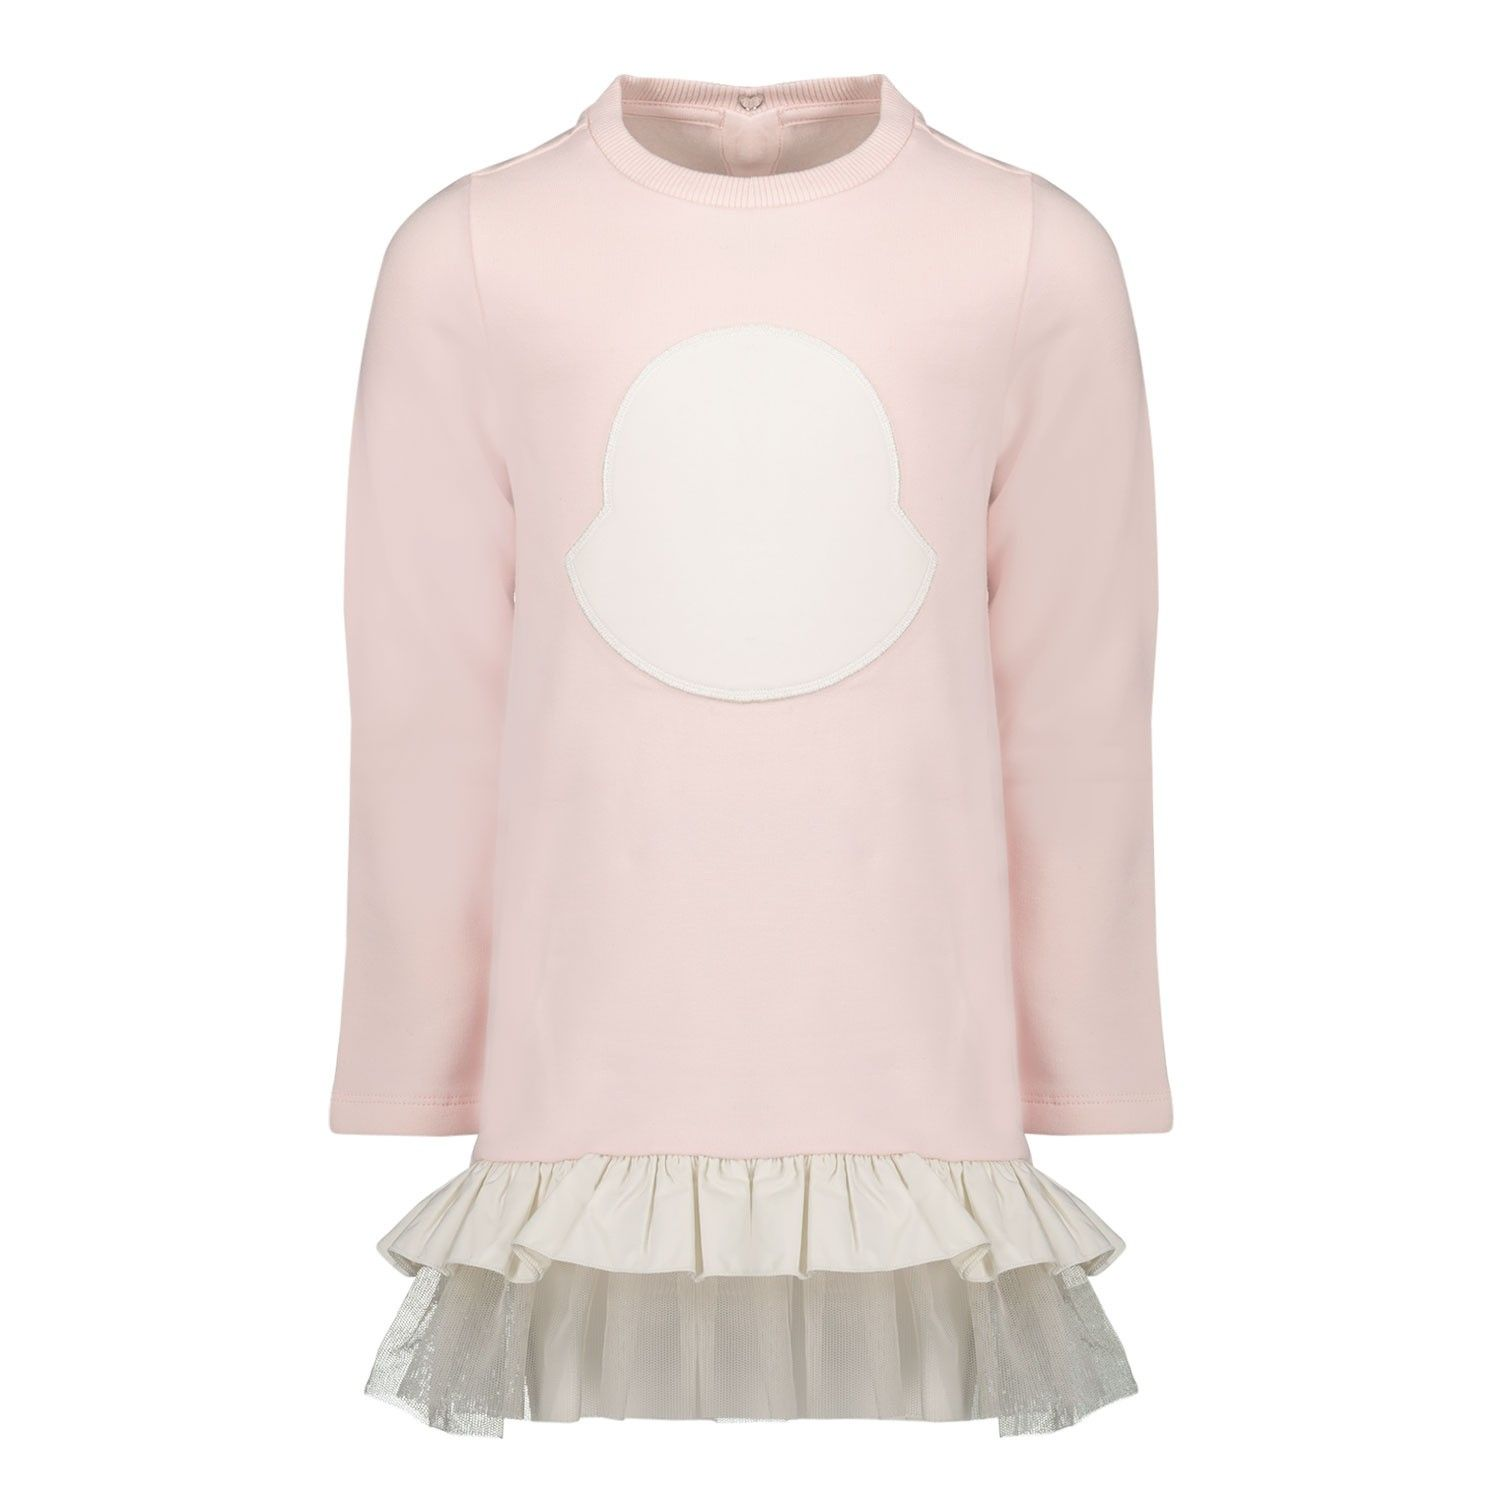 Picture of Moncler 8I71710 baby dress light pink